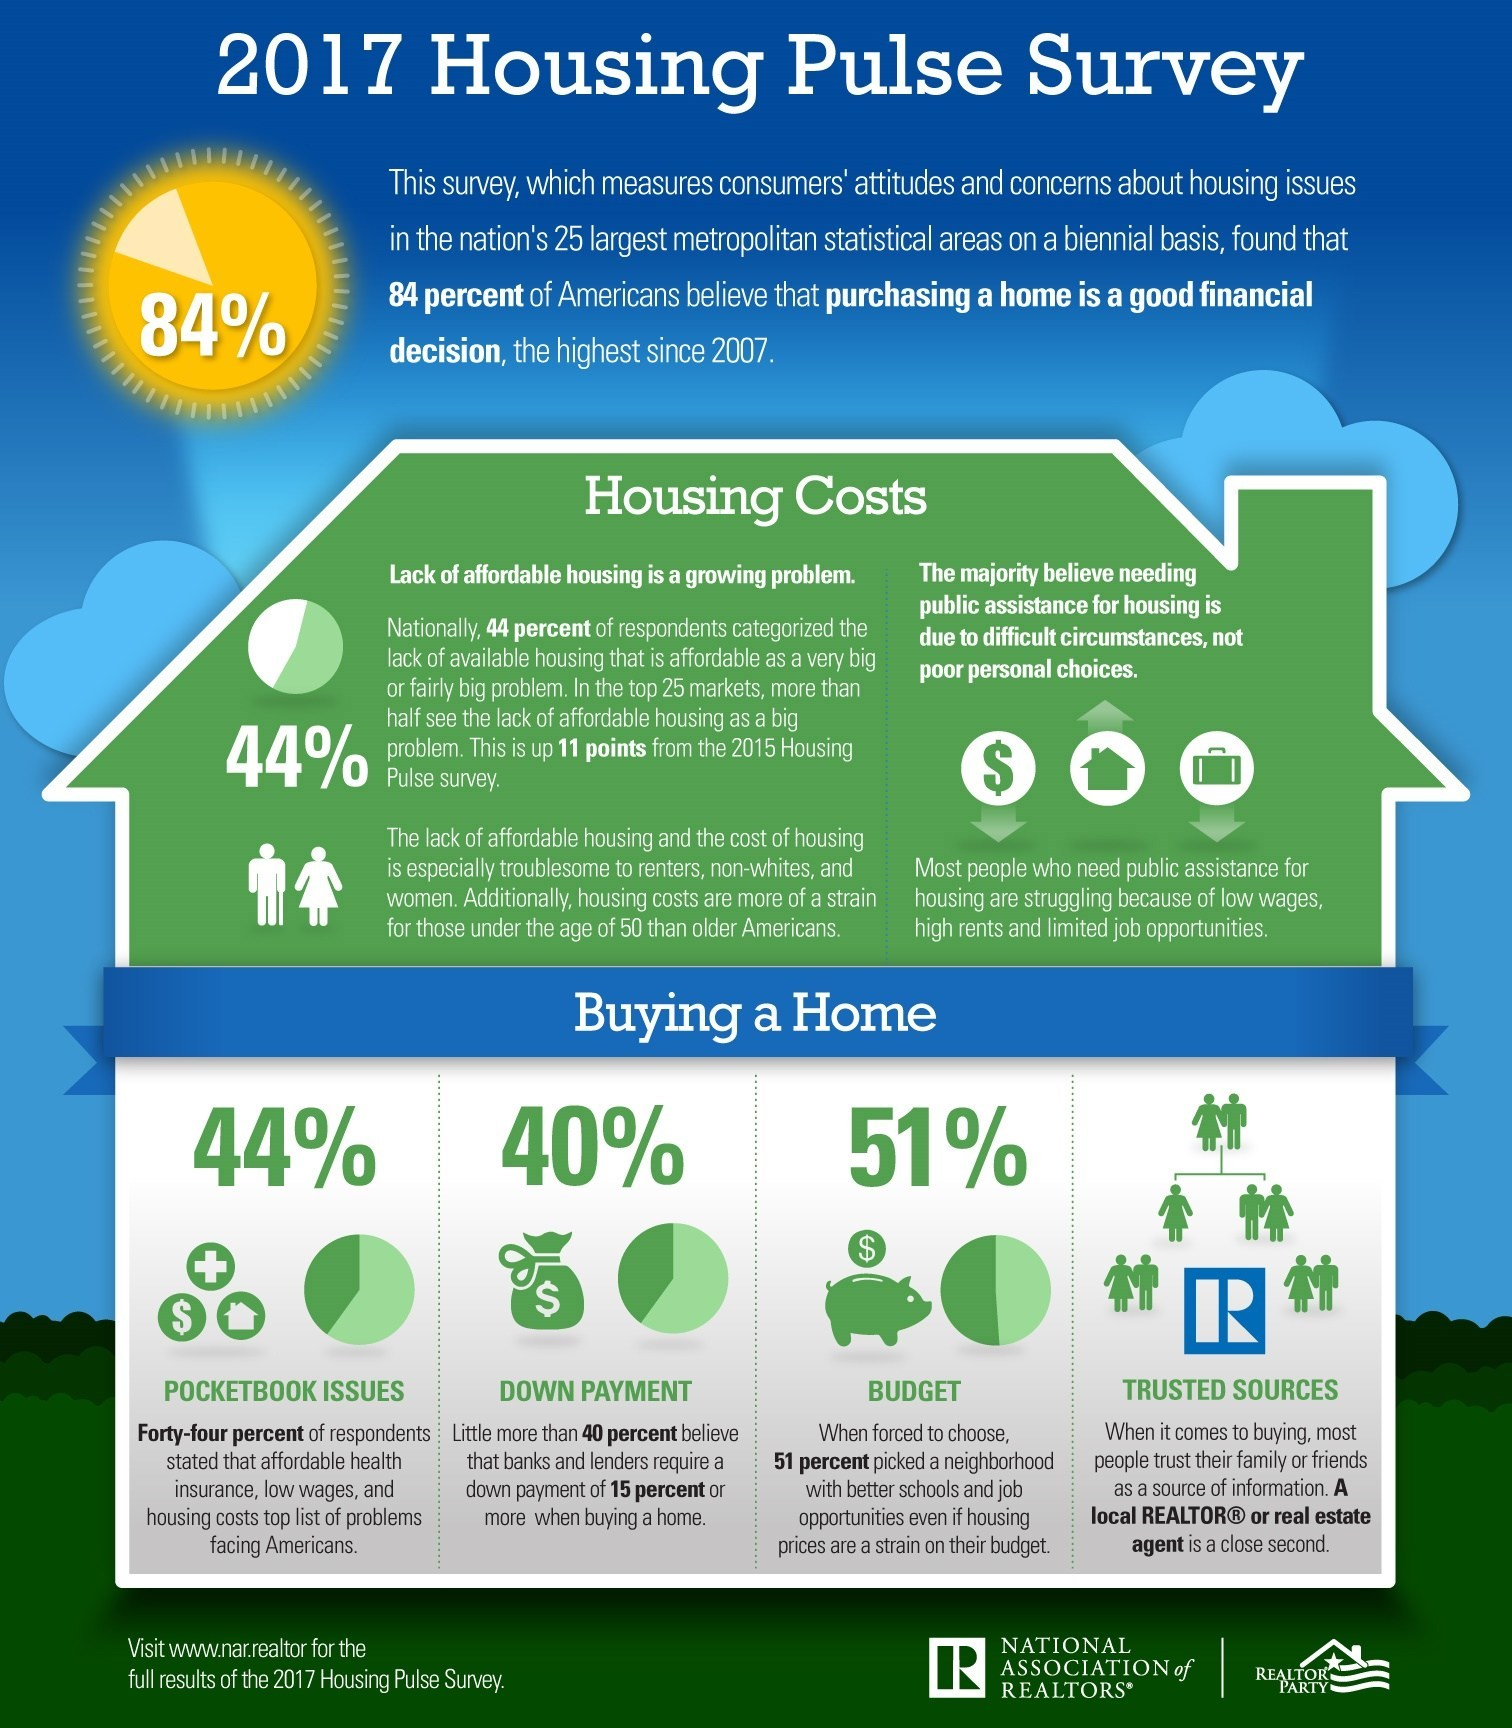 84 percent of Americans see homeownership as a good investment, according to the National Association of Realtors®' 2017 National Housing Pulse Survey. (PRNewsfoto/National Association of Realtors)